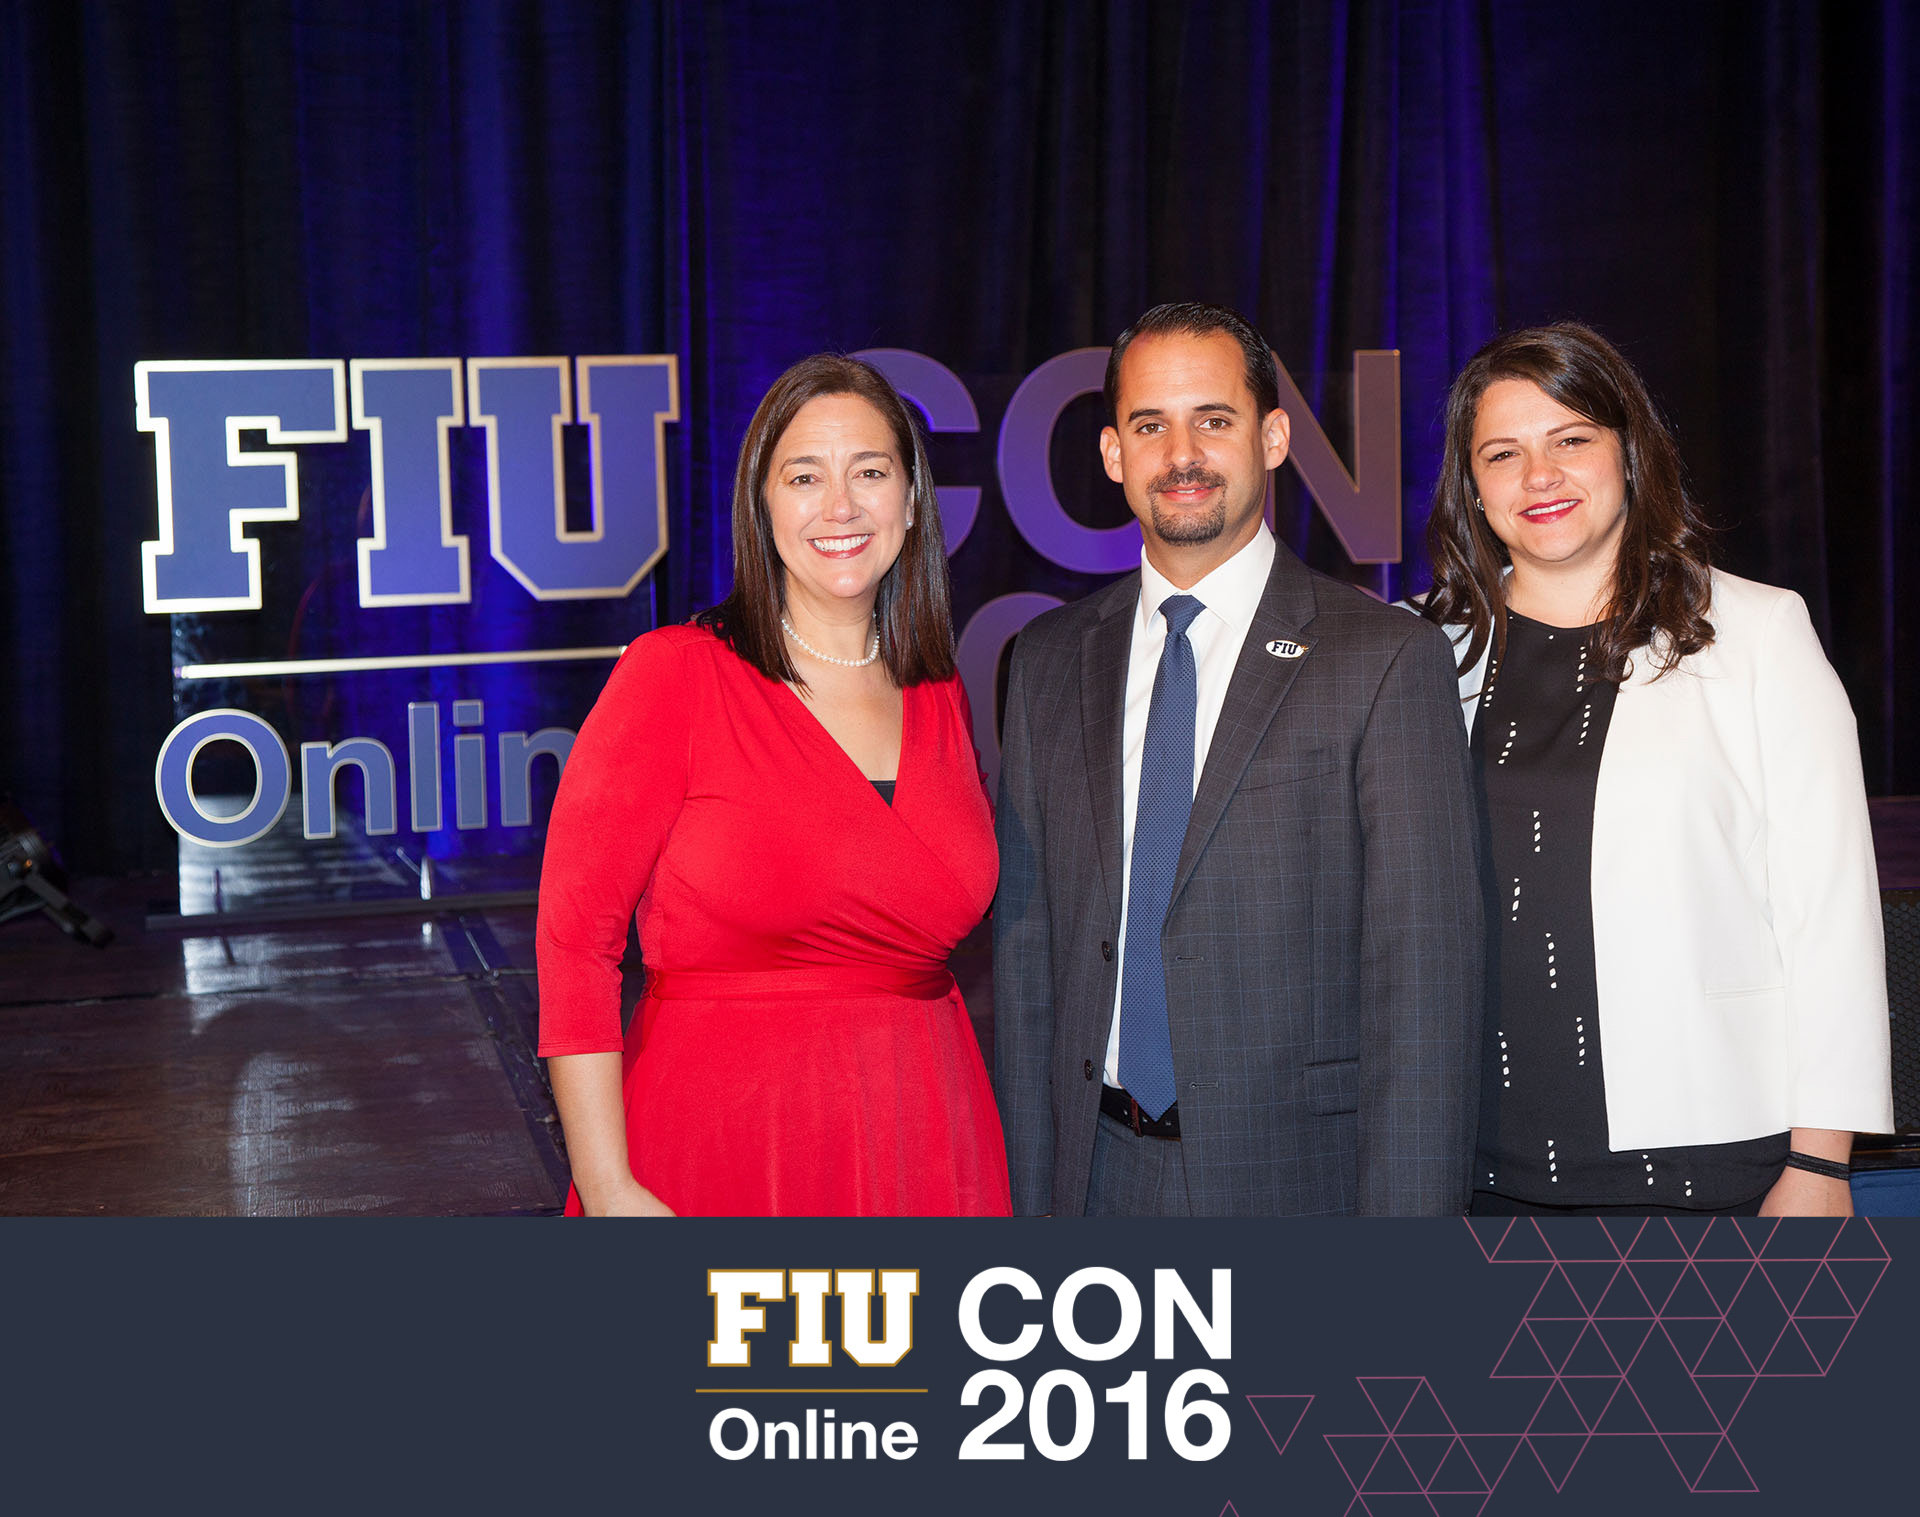 147.jpg FIU Online conference photos